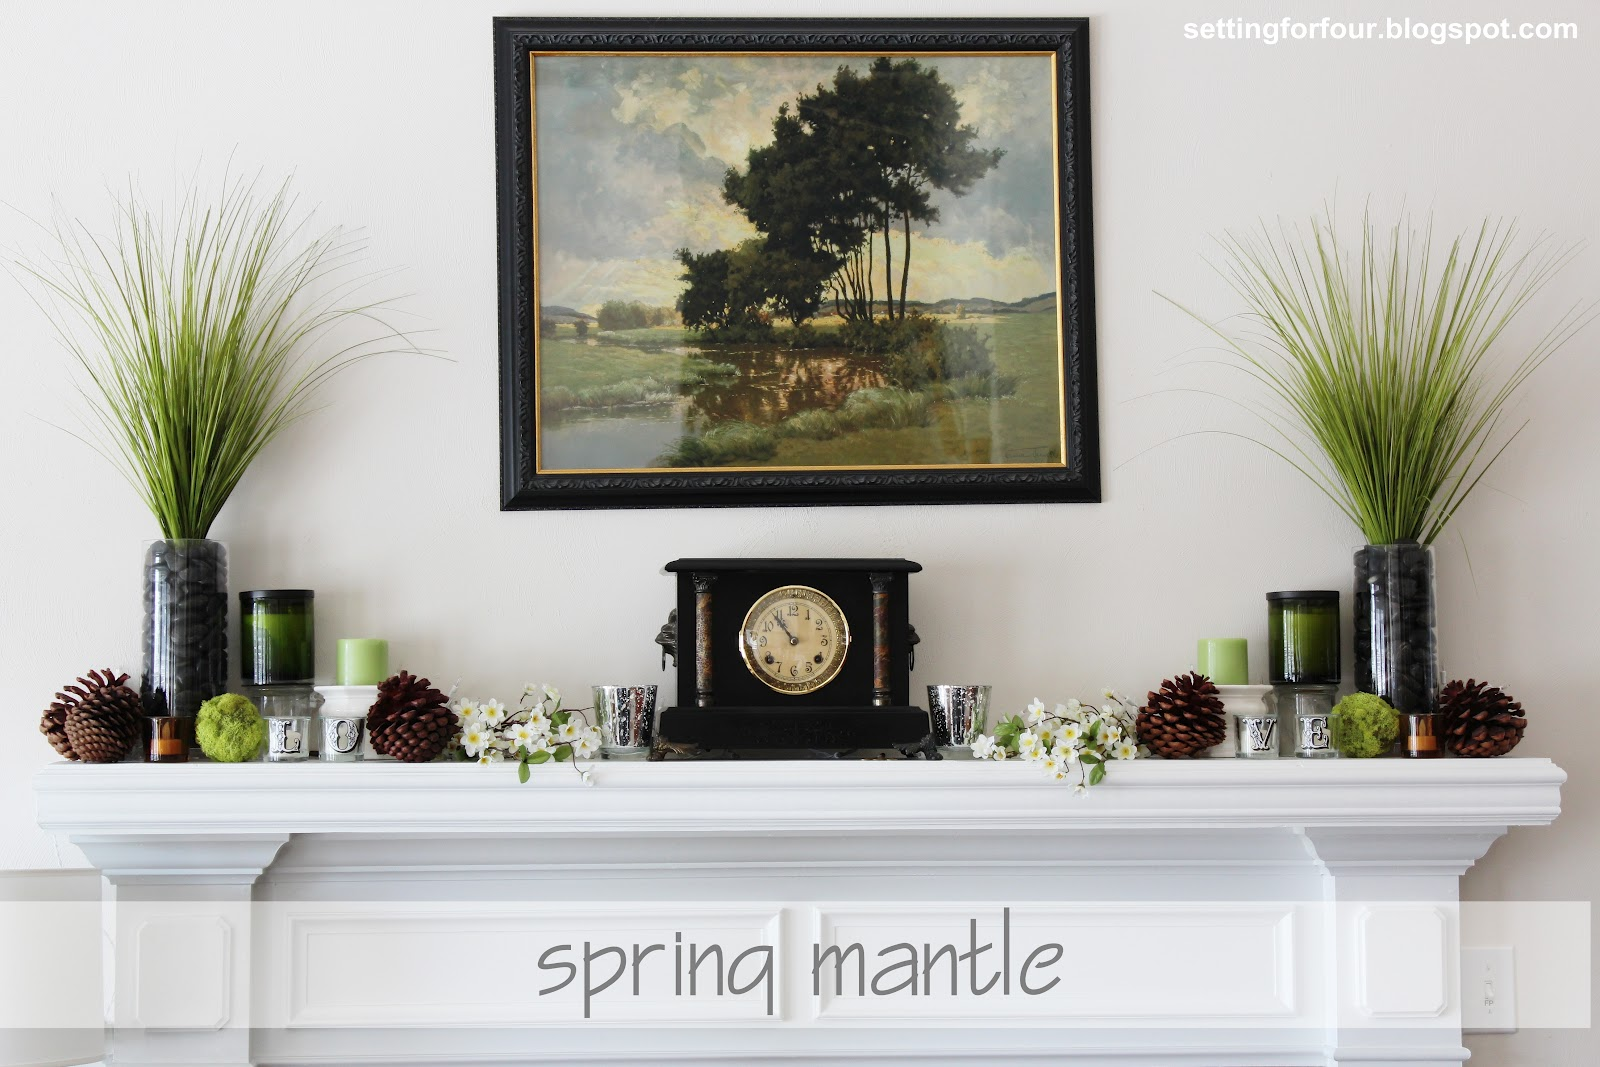 Spring mantle ideas from better homes and gardens Fireplace setting ideas